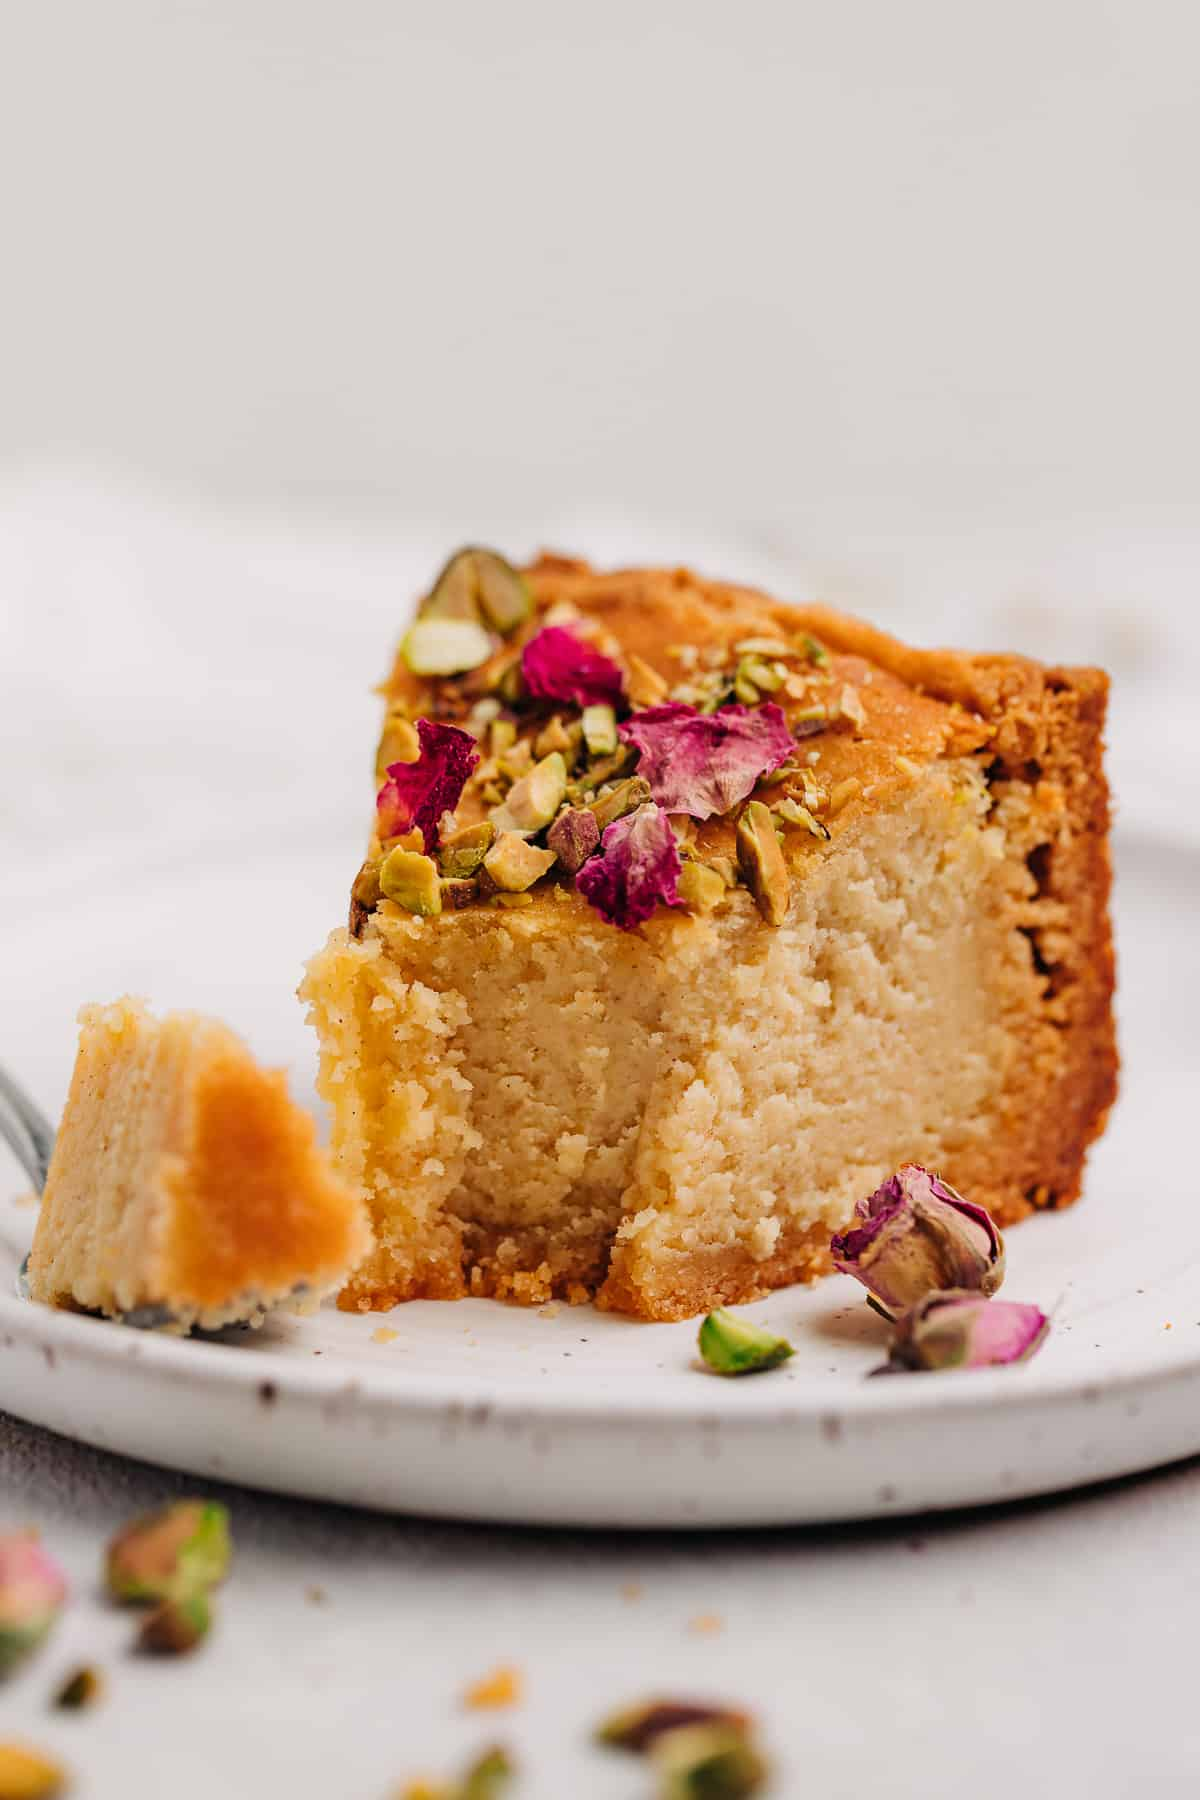 A slice of Persian love cake on a plate with a fork.